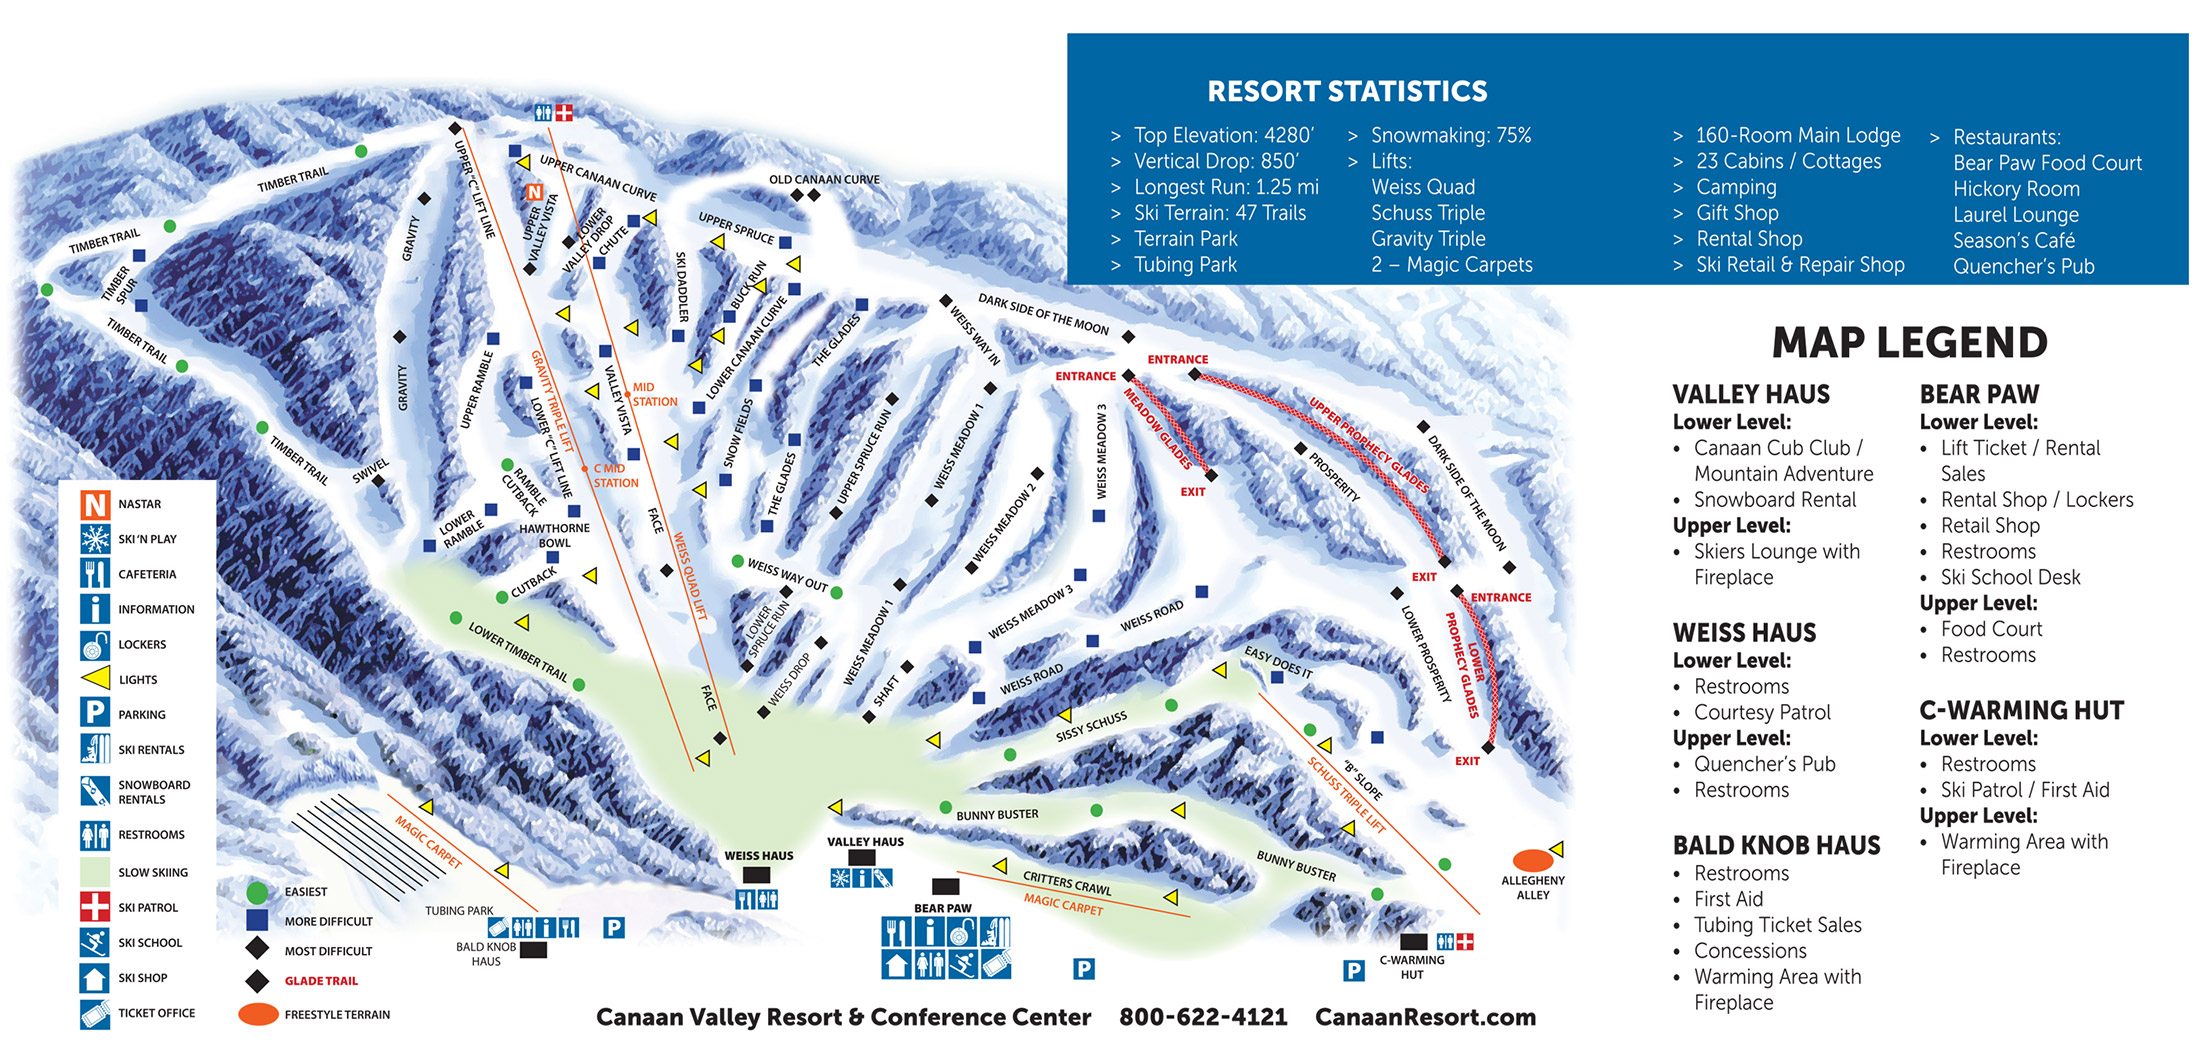 DCSki Resort Profile: Canaan Valley Resort on blacks run virginia map, valley west virginia state map, canaan valley state park map, seneca creek geologic map, 495 potomac river map, valley of s in west virginia map, canaan valley directions, canaan valley trail map, canaan valley attractions, blackwater va map, old timberline wv map, west coast of california map, canaan valley resort wv, shenandoah valley west virginia map, blackwater falls state map, canaan mountain ski map, canaan valley national wildlife refuge map, blackwater state park map, shenandoah mountains map,